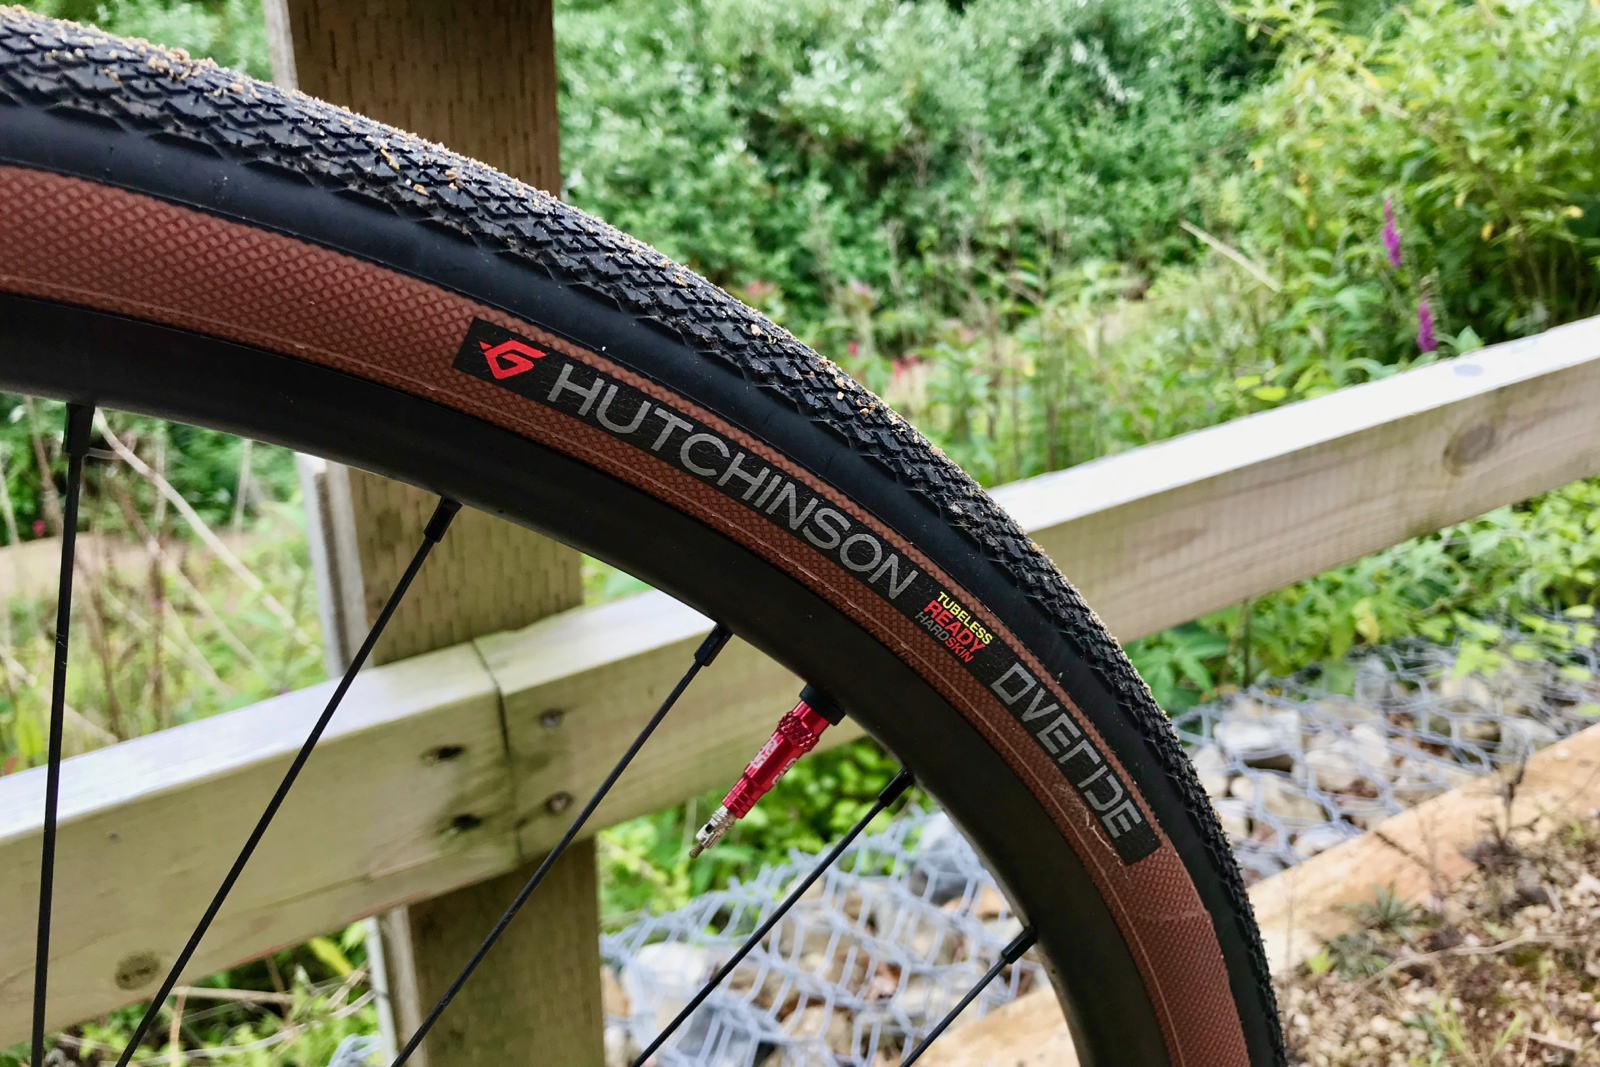 Hutchinson Tires Overide Tubeless Gravel Tyres Review